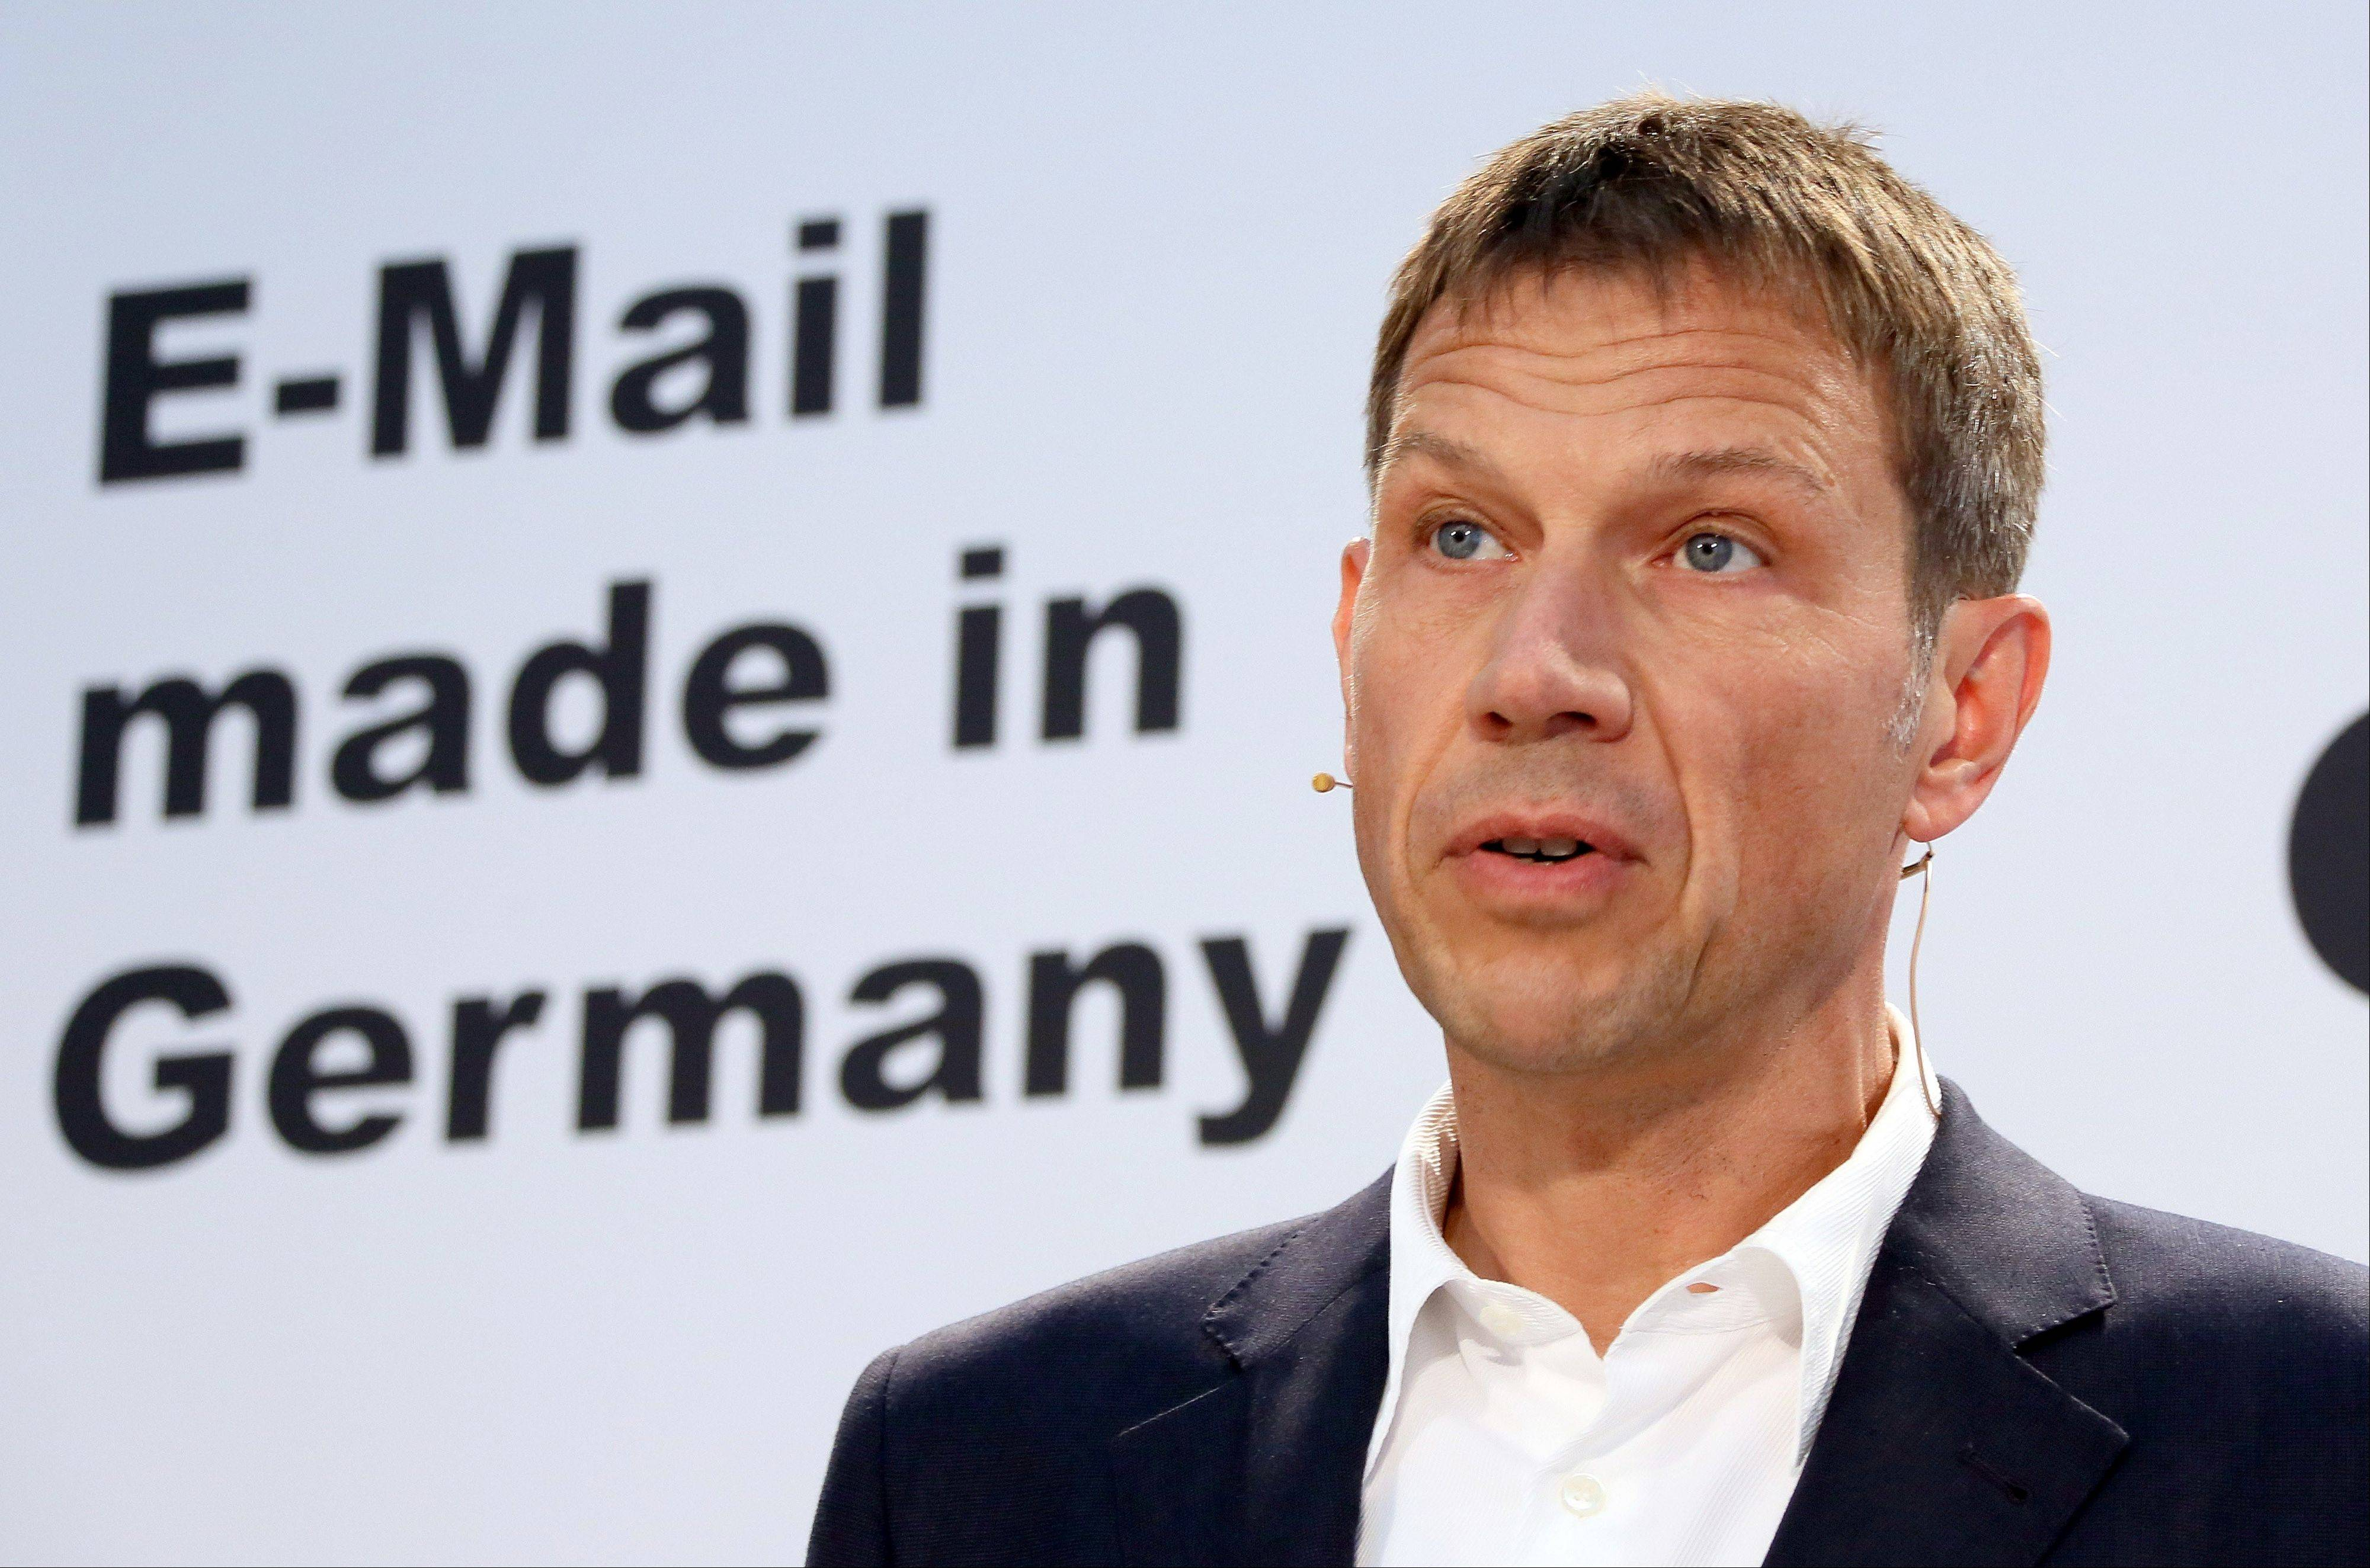 CEO of Deutsche Telekom Rene Obermann holds a press conference in Berlin Friday to discuss securing e-mail in Germany. Deutsche Telekom AG and United Internet AG, Germany's biggest Internet service providers, say they will encrypt customers' emails by default following reports that the U.S. National Security Agency monitors international electronic communications.